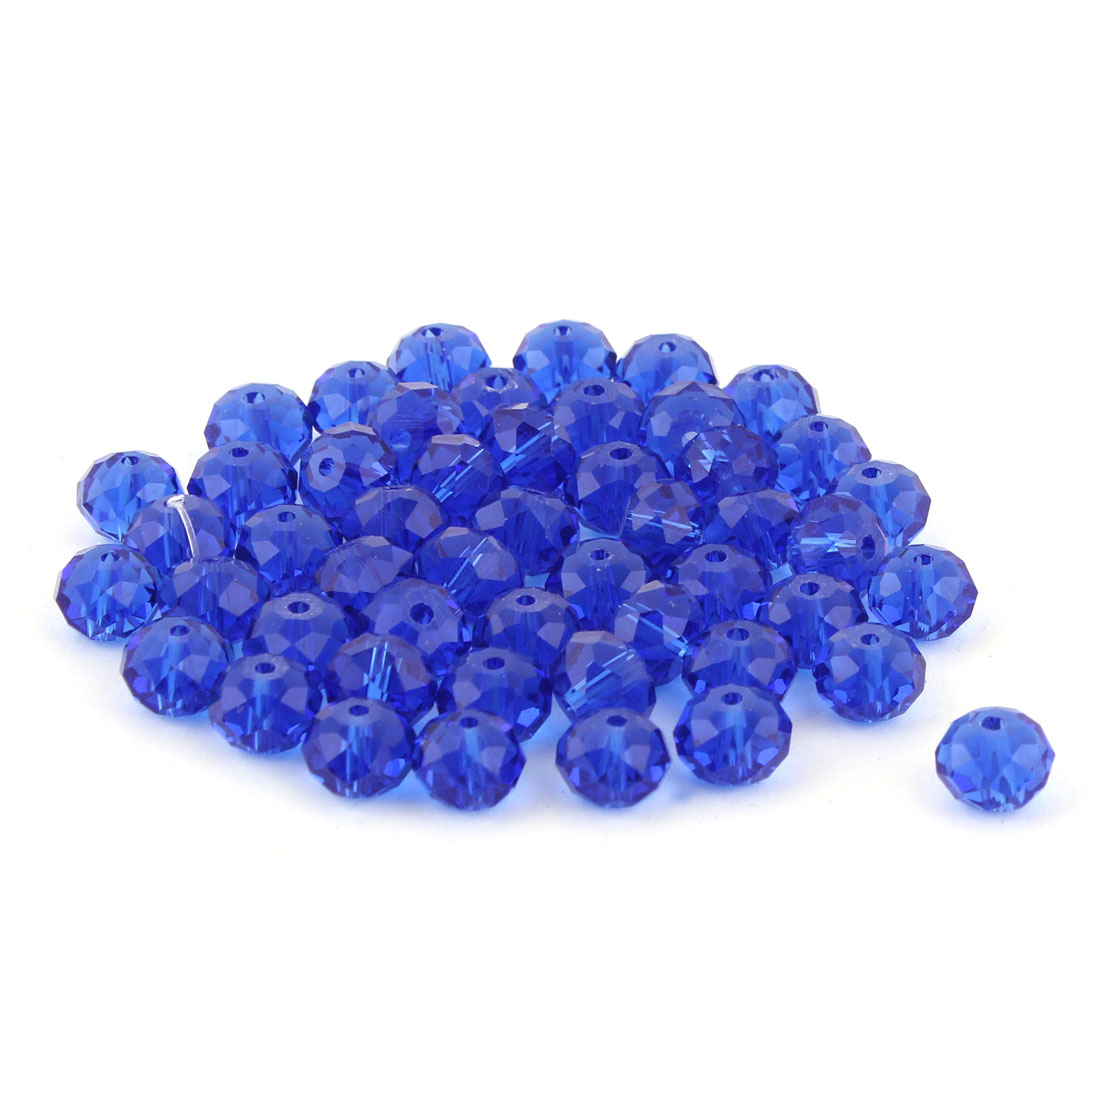 Lady Jewelry Bracelet Necklace Artifical Glittery Crystal Beads Dark Blue 8MM 50 PCS